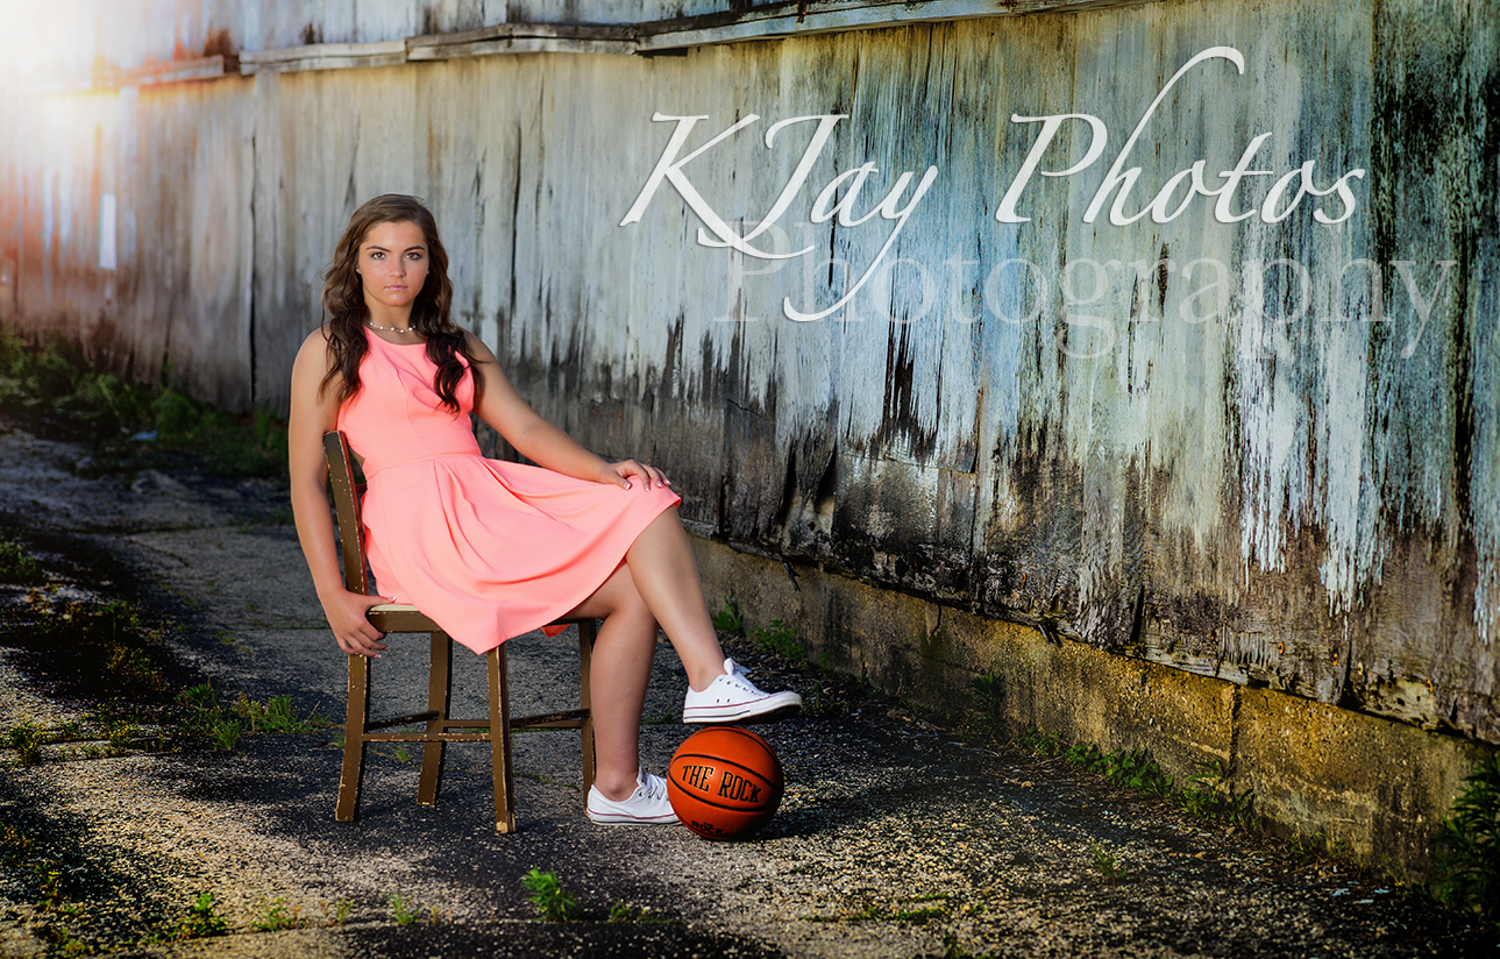 Photography Studio In Waunakee Archives Kjay Portraits Photography Madison Wi Kjay Portraits Photography Madison Wi